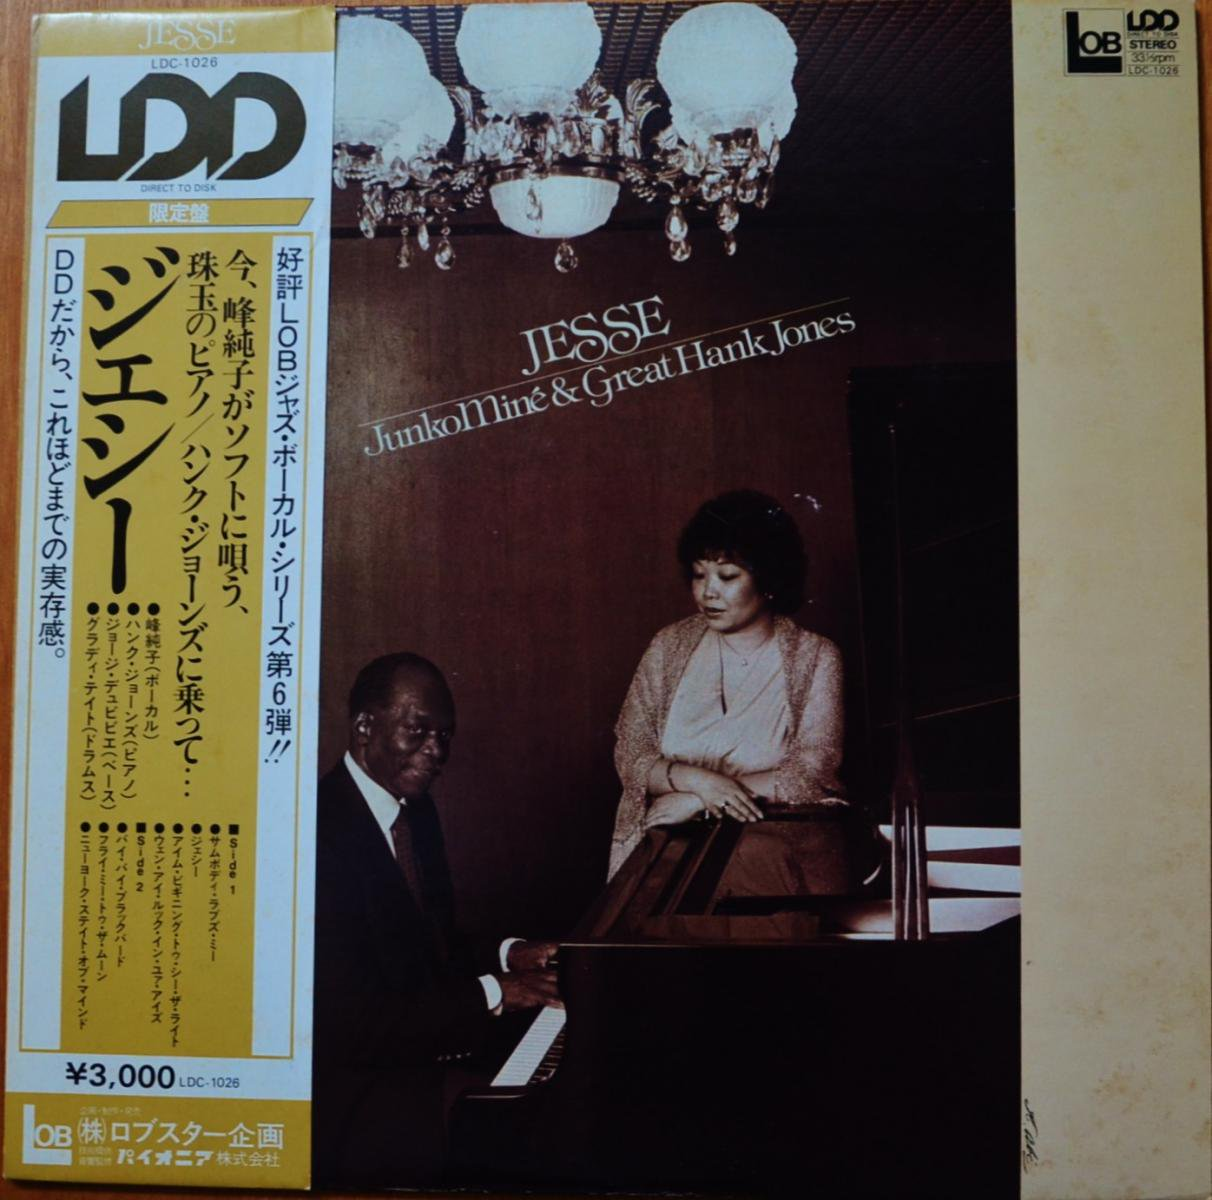 峰純子 JUNKO MINE & GREAT HANK JONES / ジェシー JESSE (LP)